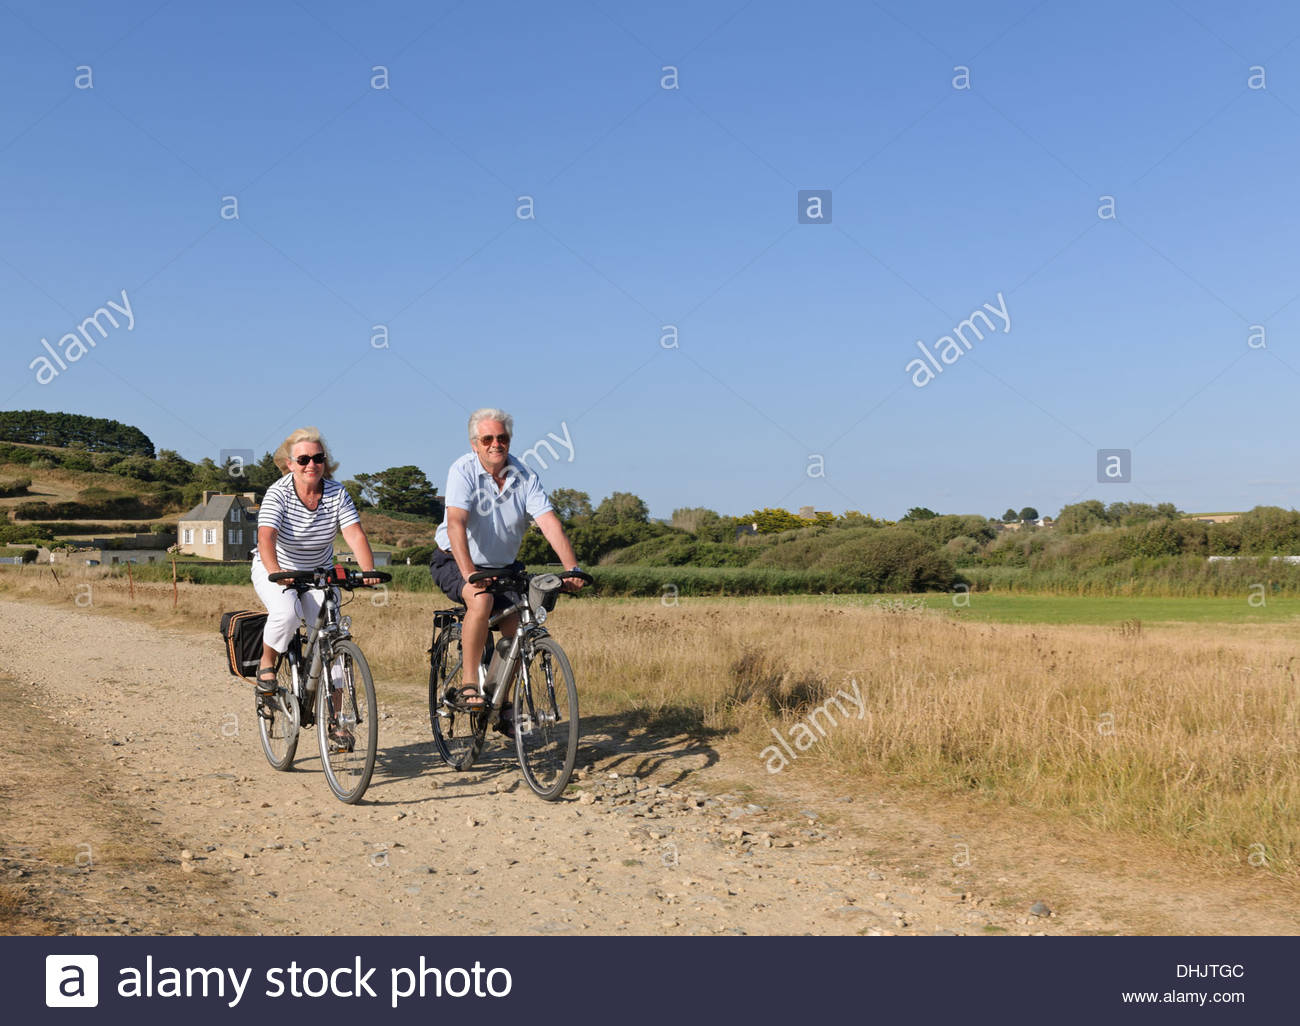 E Bikes Stock Photos Amp E Bikes Stock Images Alamy